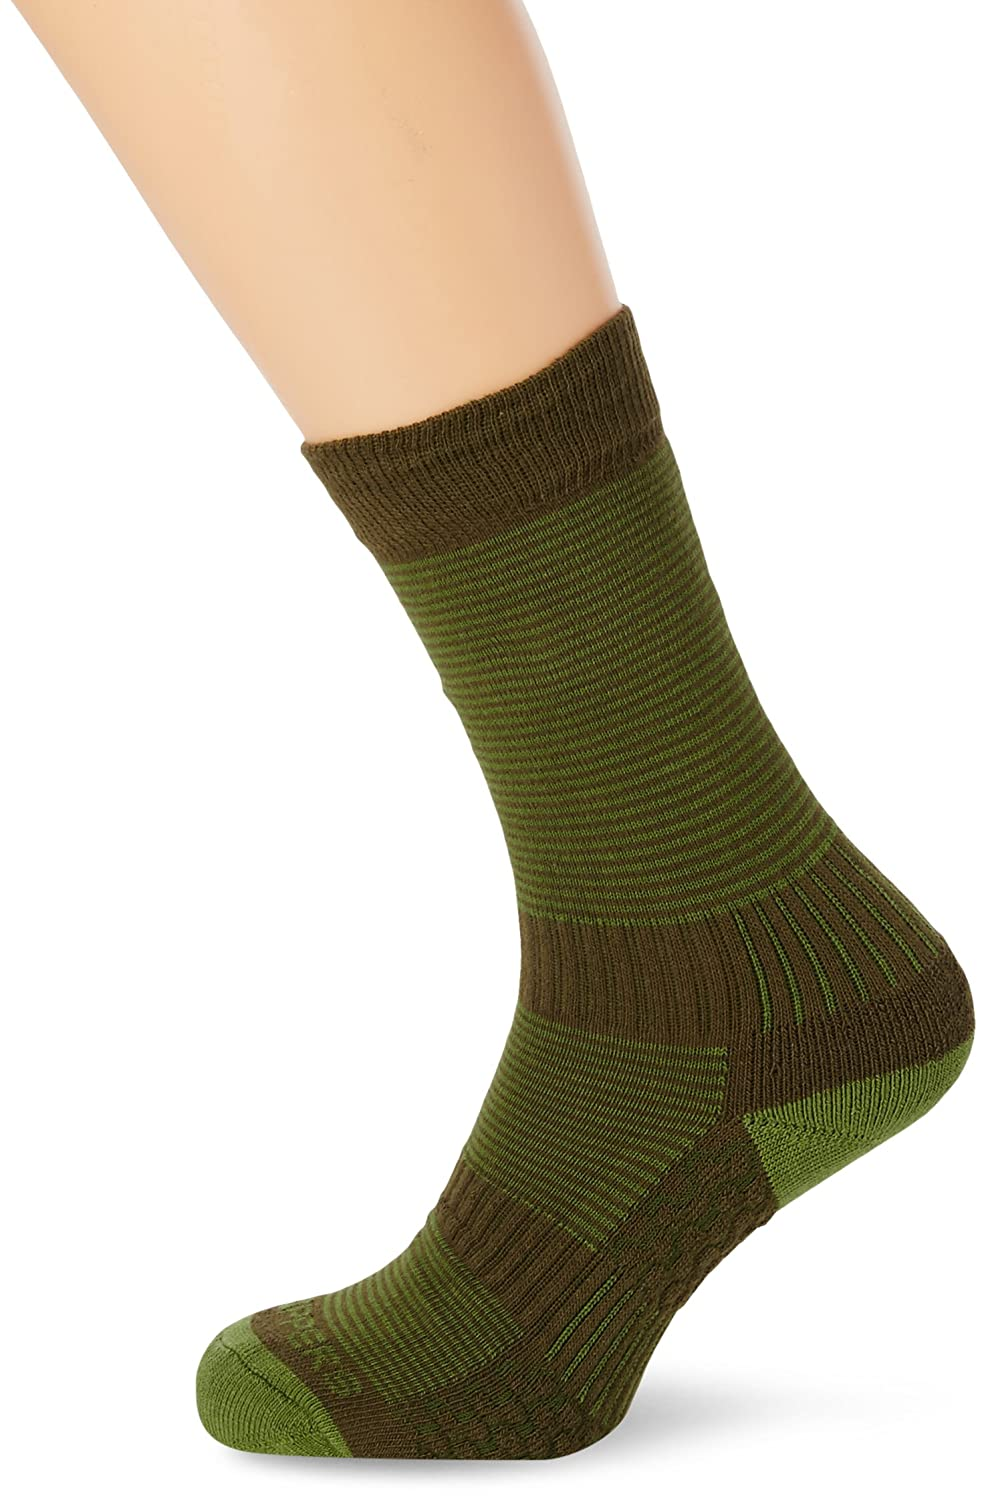 Extra Long For Men Mosquitos Ideal in Spring and Summer. Hiking and Trekking Insects Women and Kids DANISH ENDURANCE Anti-Tick Merino Wool Outdoor Socks Repellent Protection against Ticks